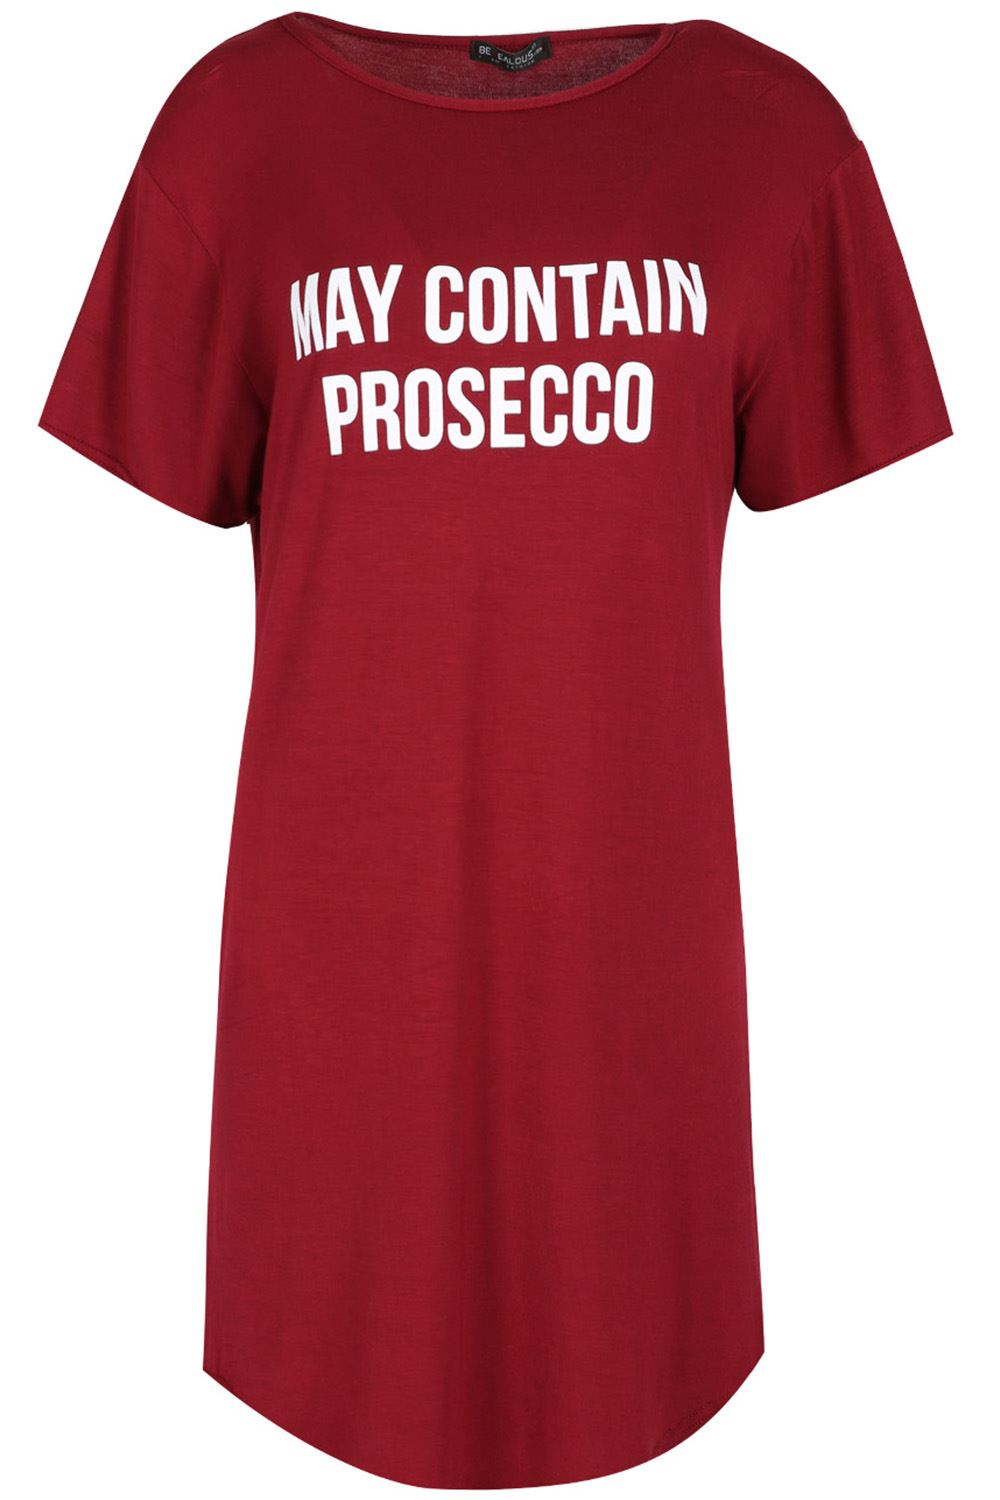 Ladies-Womens-Short-Sleeve-CONTAINS-PROSECCO-Longline-Curved-Hem-T-Shirt-Dress